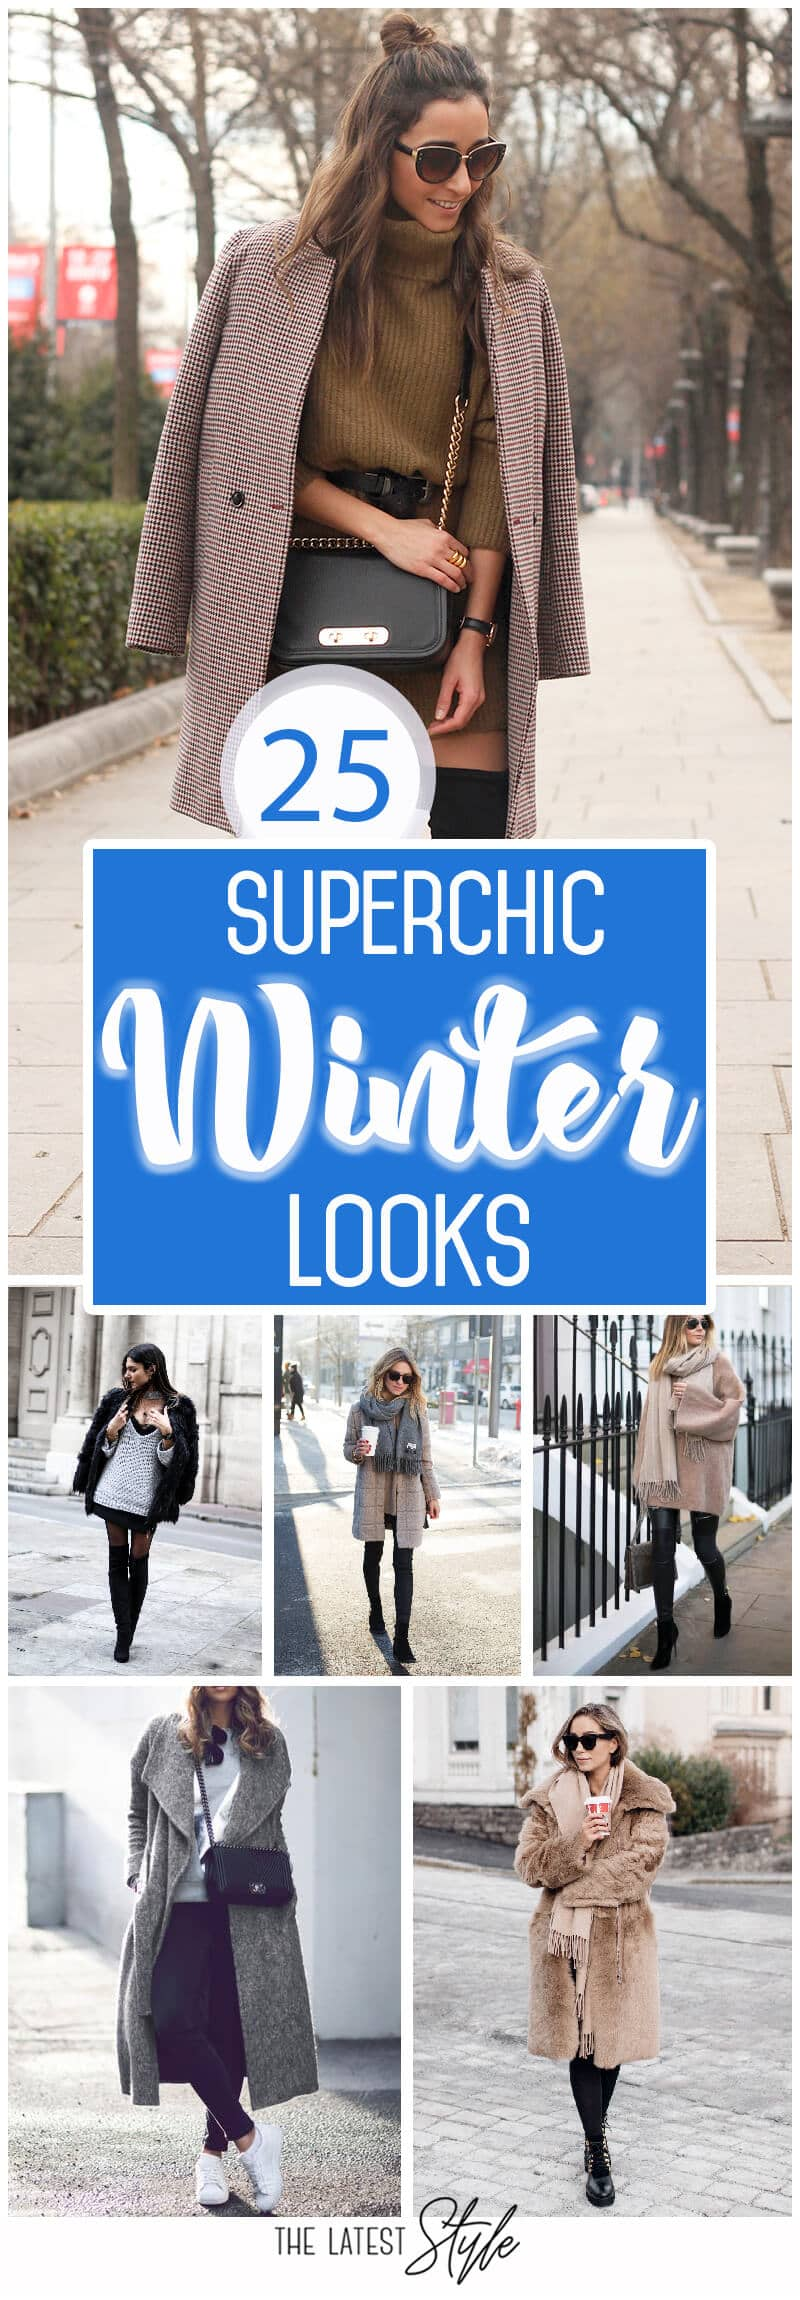 25 Chic Winter Looks that Will Make You Fell Stylish and Cozy